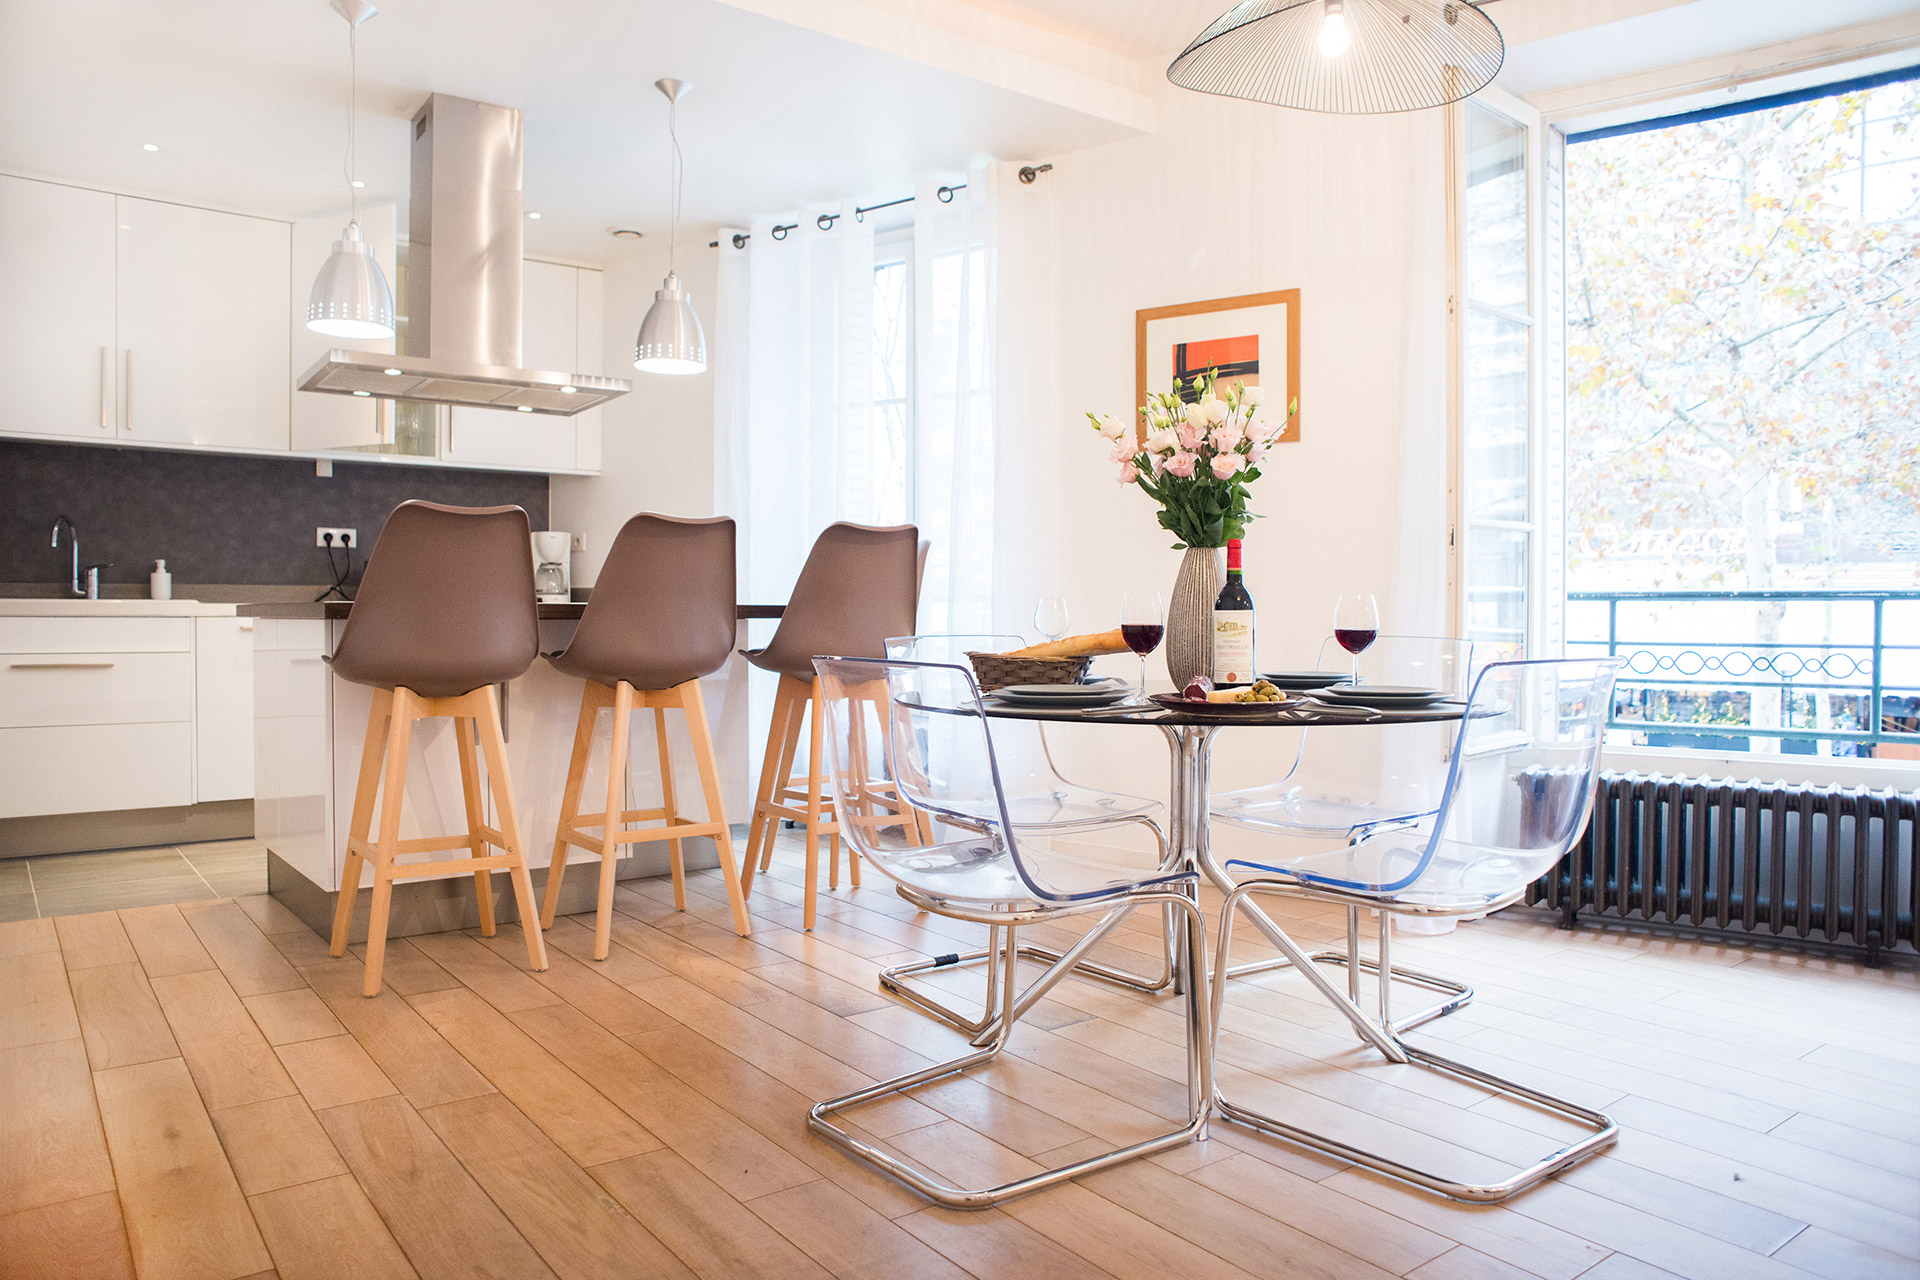 Dining table for four of the Monplaisir vacation rental by Paris Perfect